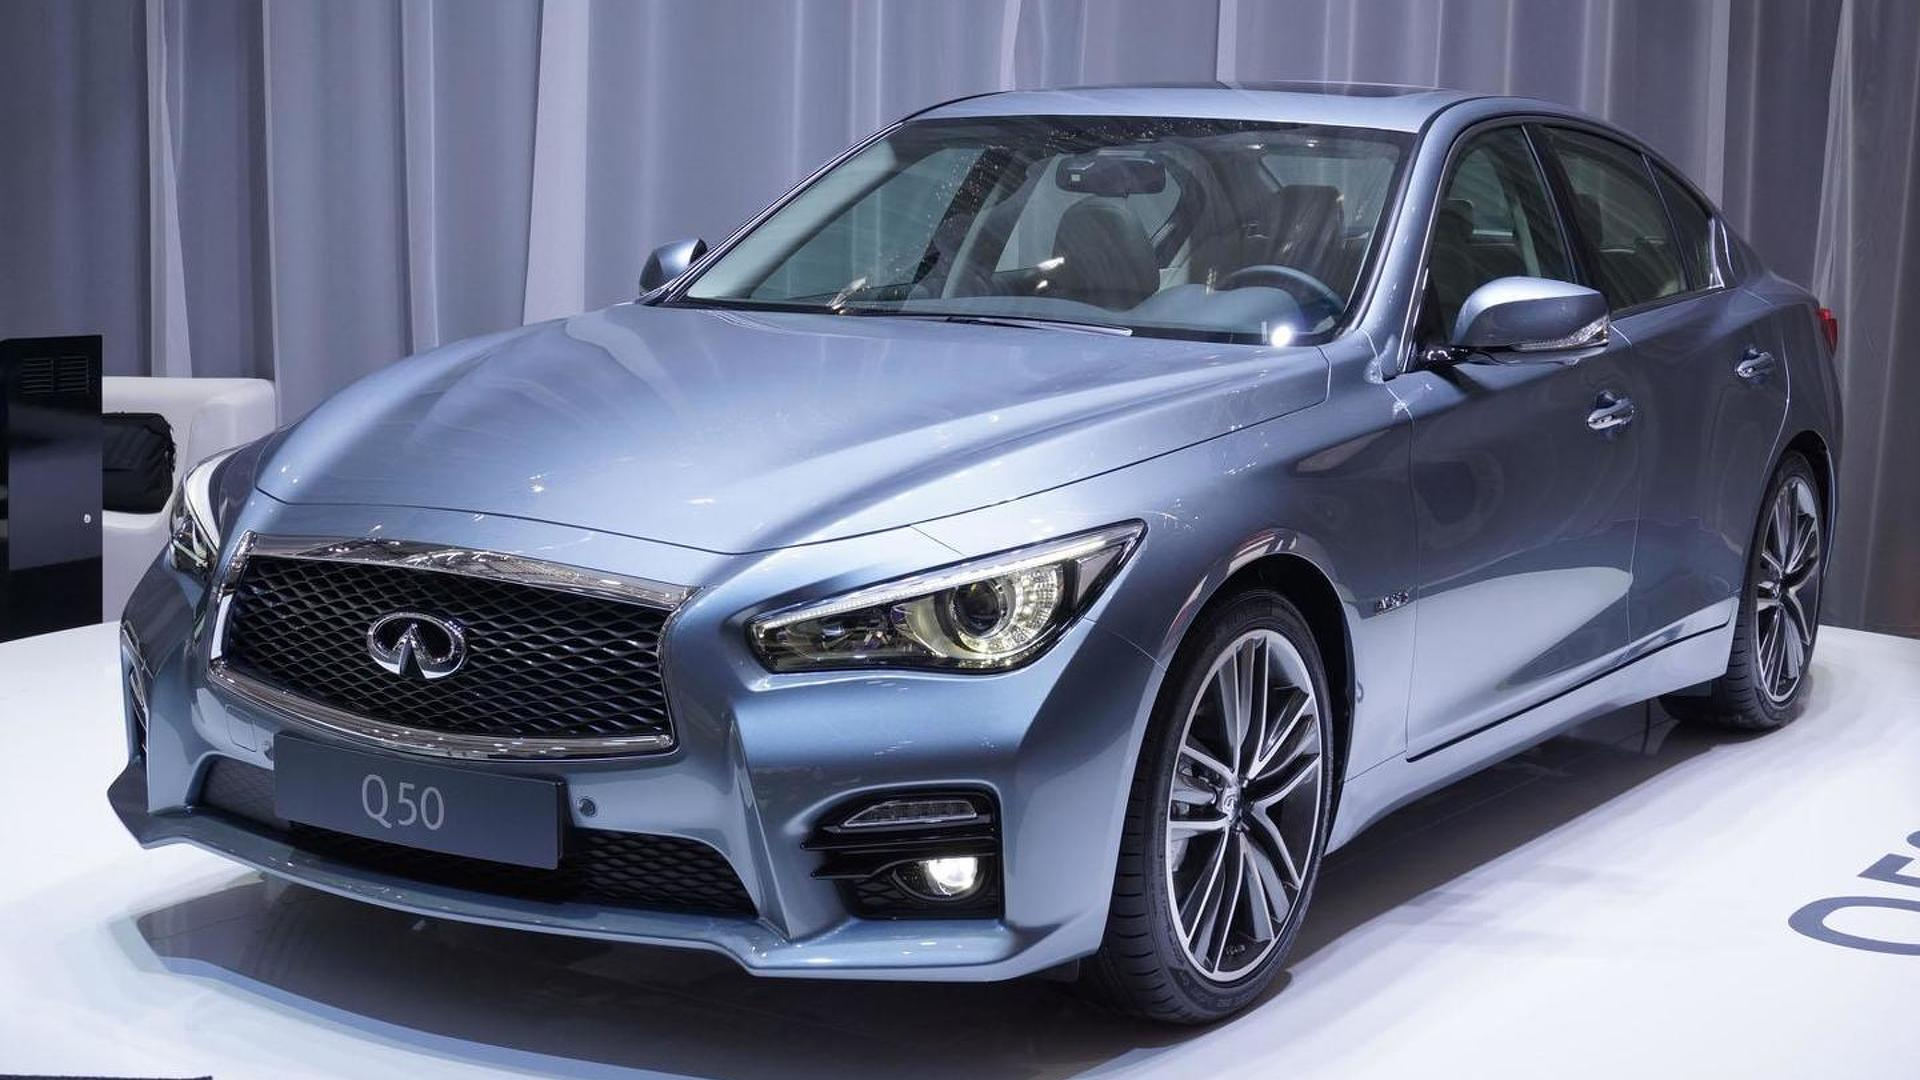 in ct awd infinity sale hartford available dr ellington connecticut south car for used infiniti sedan windsor east